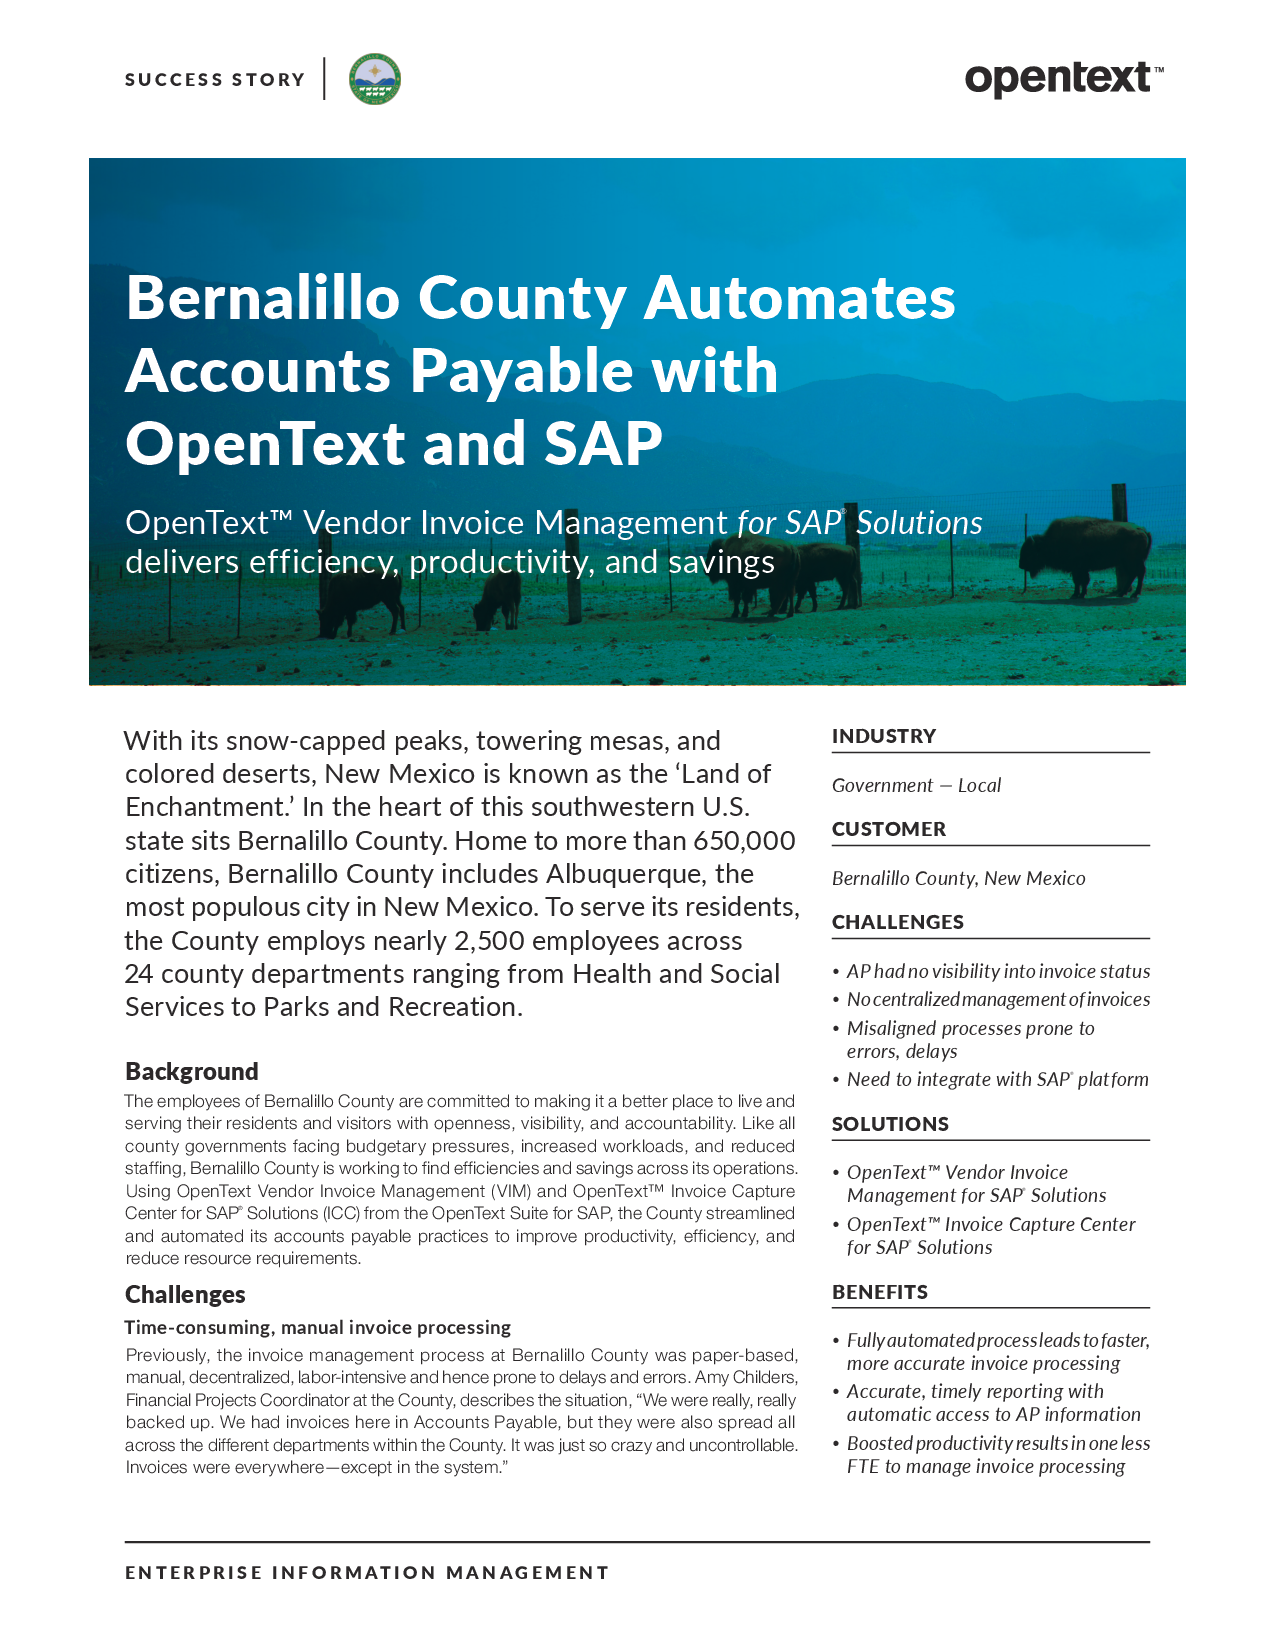 Bernalillo County Automates Accounts Payable With OpenText A - Open text invoice management